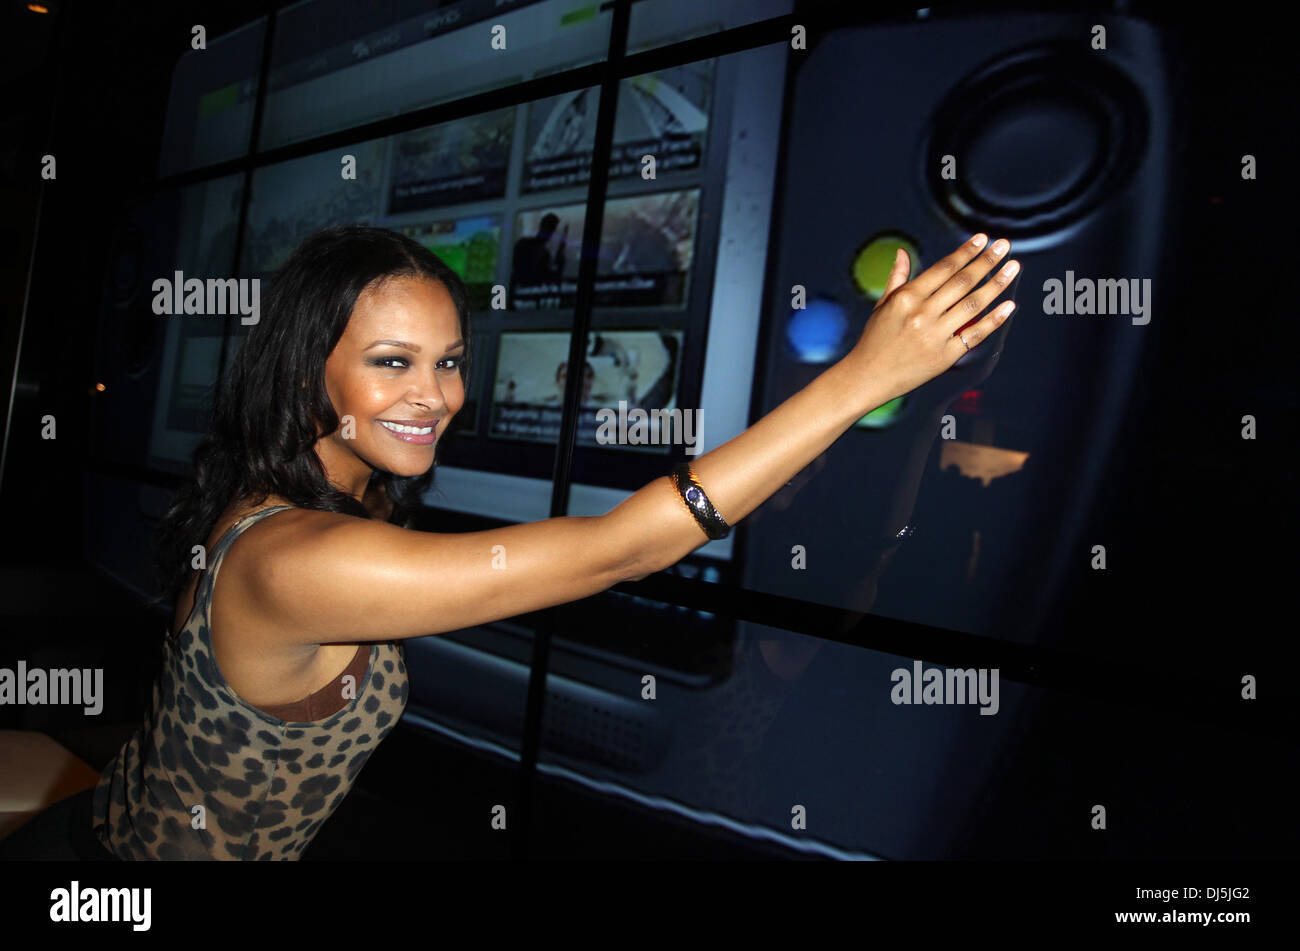 Samantha Mumba Wikipad and Nvidia host E3 2012 VIP red carpet Stock